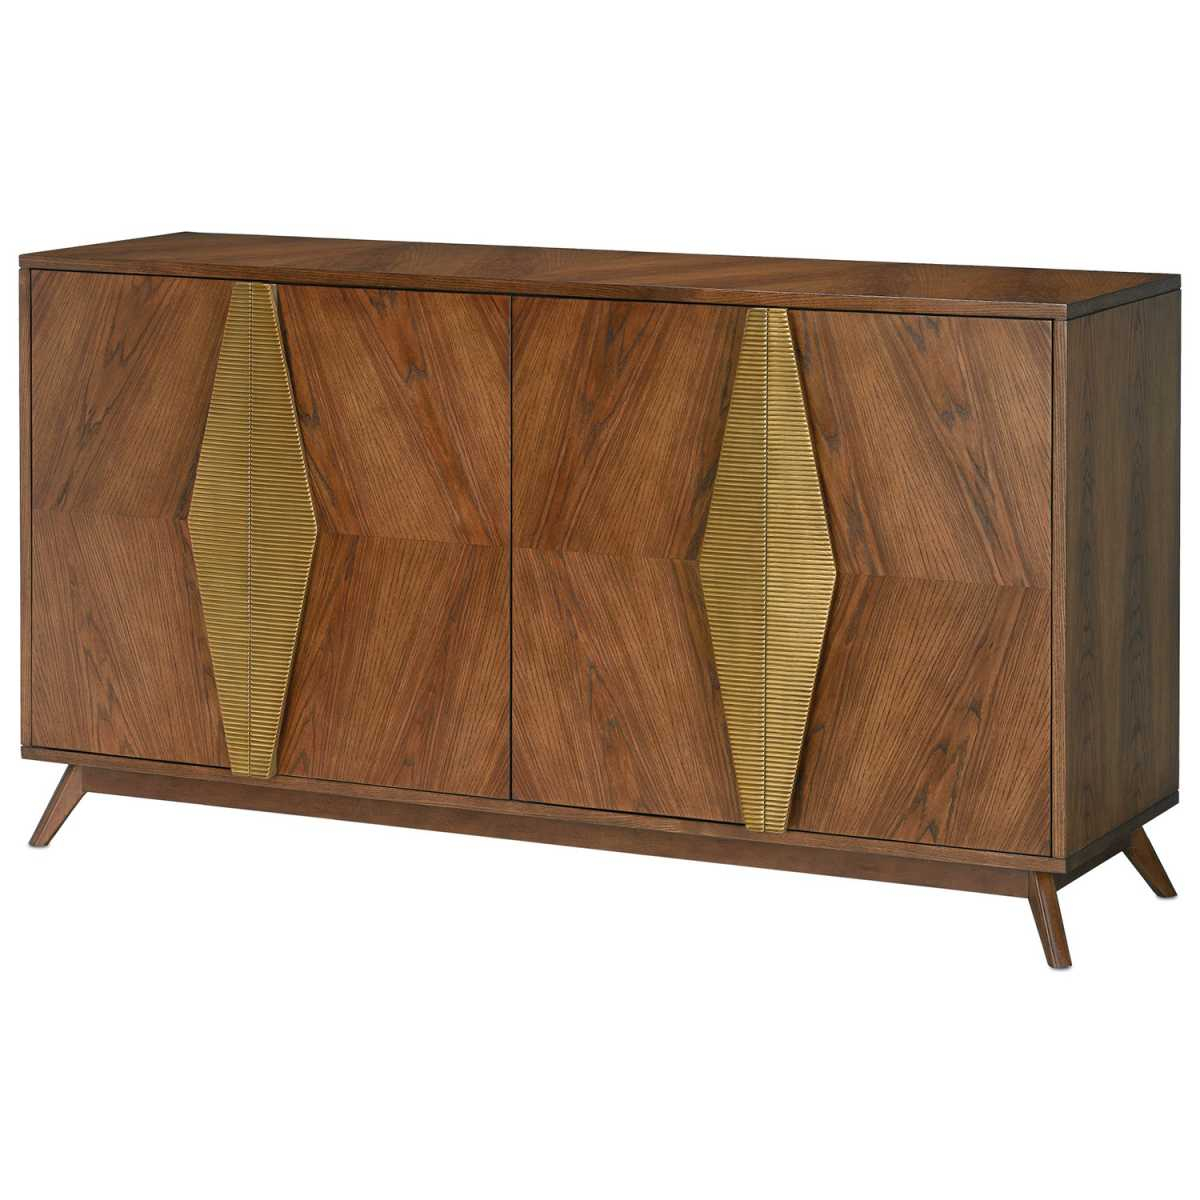 Currey And Company Arren Credenza intended for Multi Stripe Credenzas (Image 6 of 30)